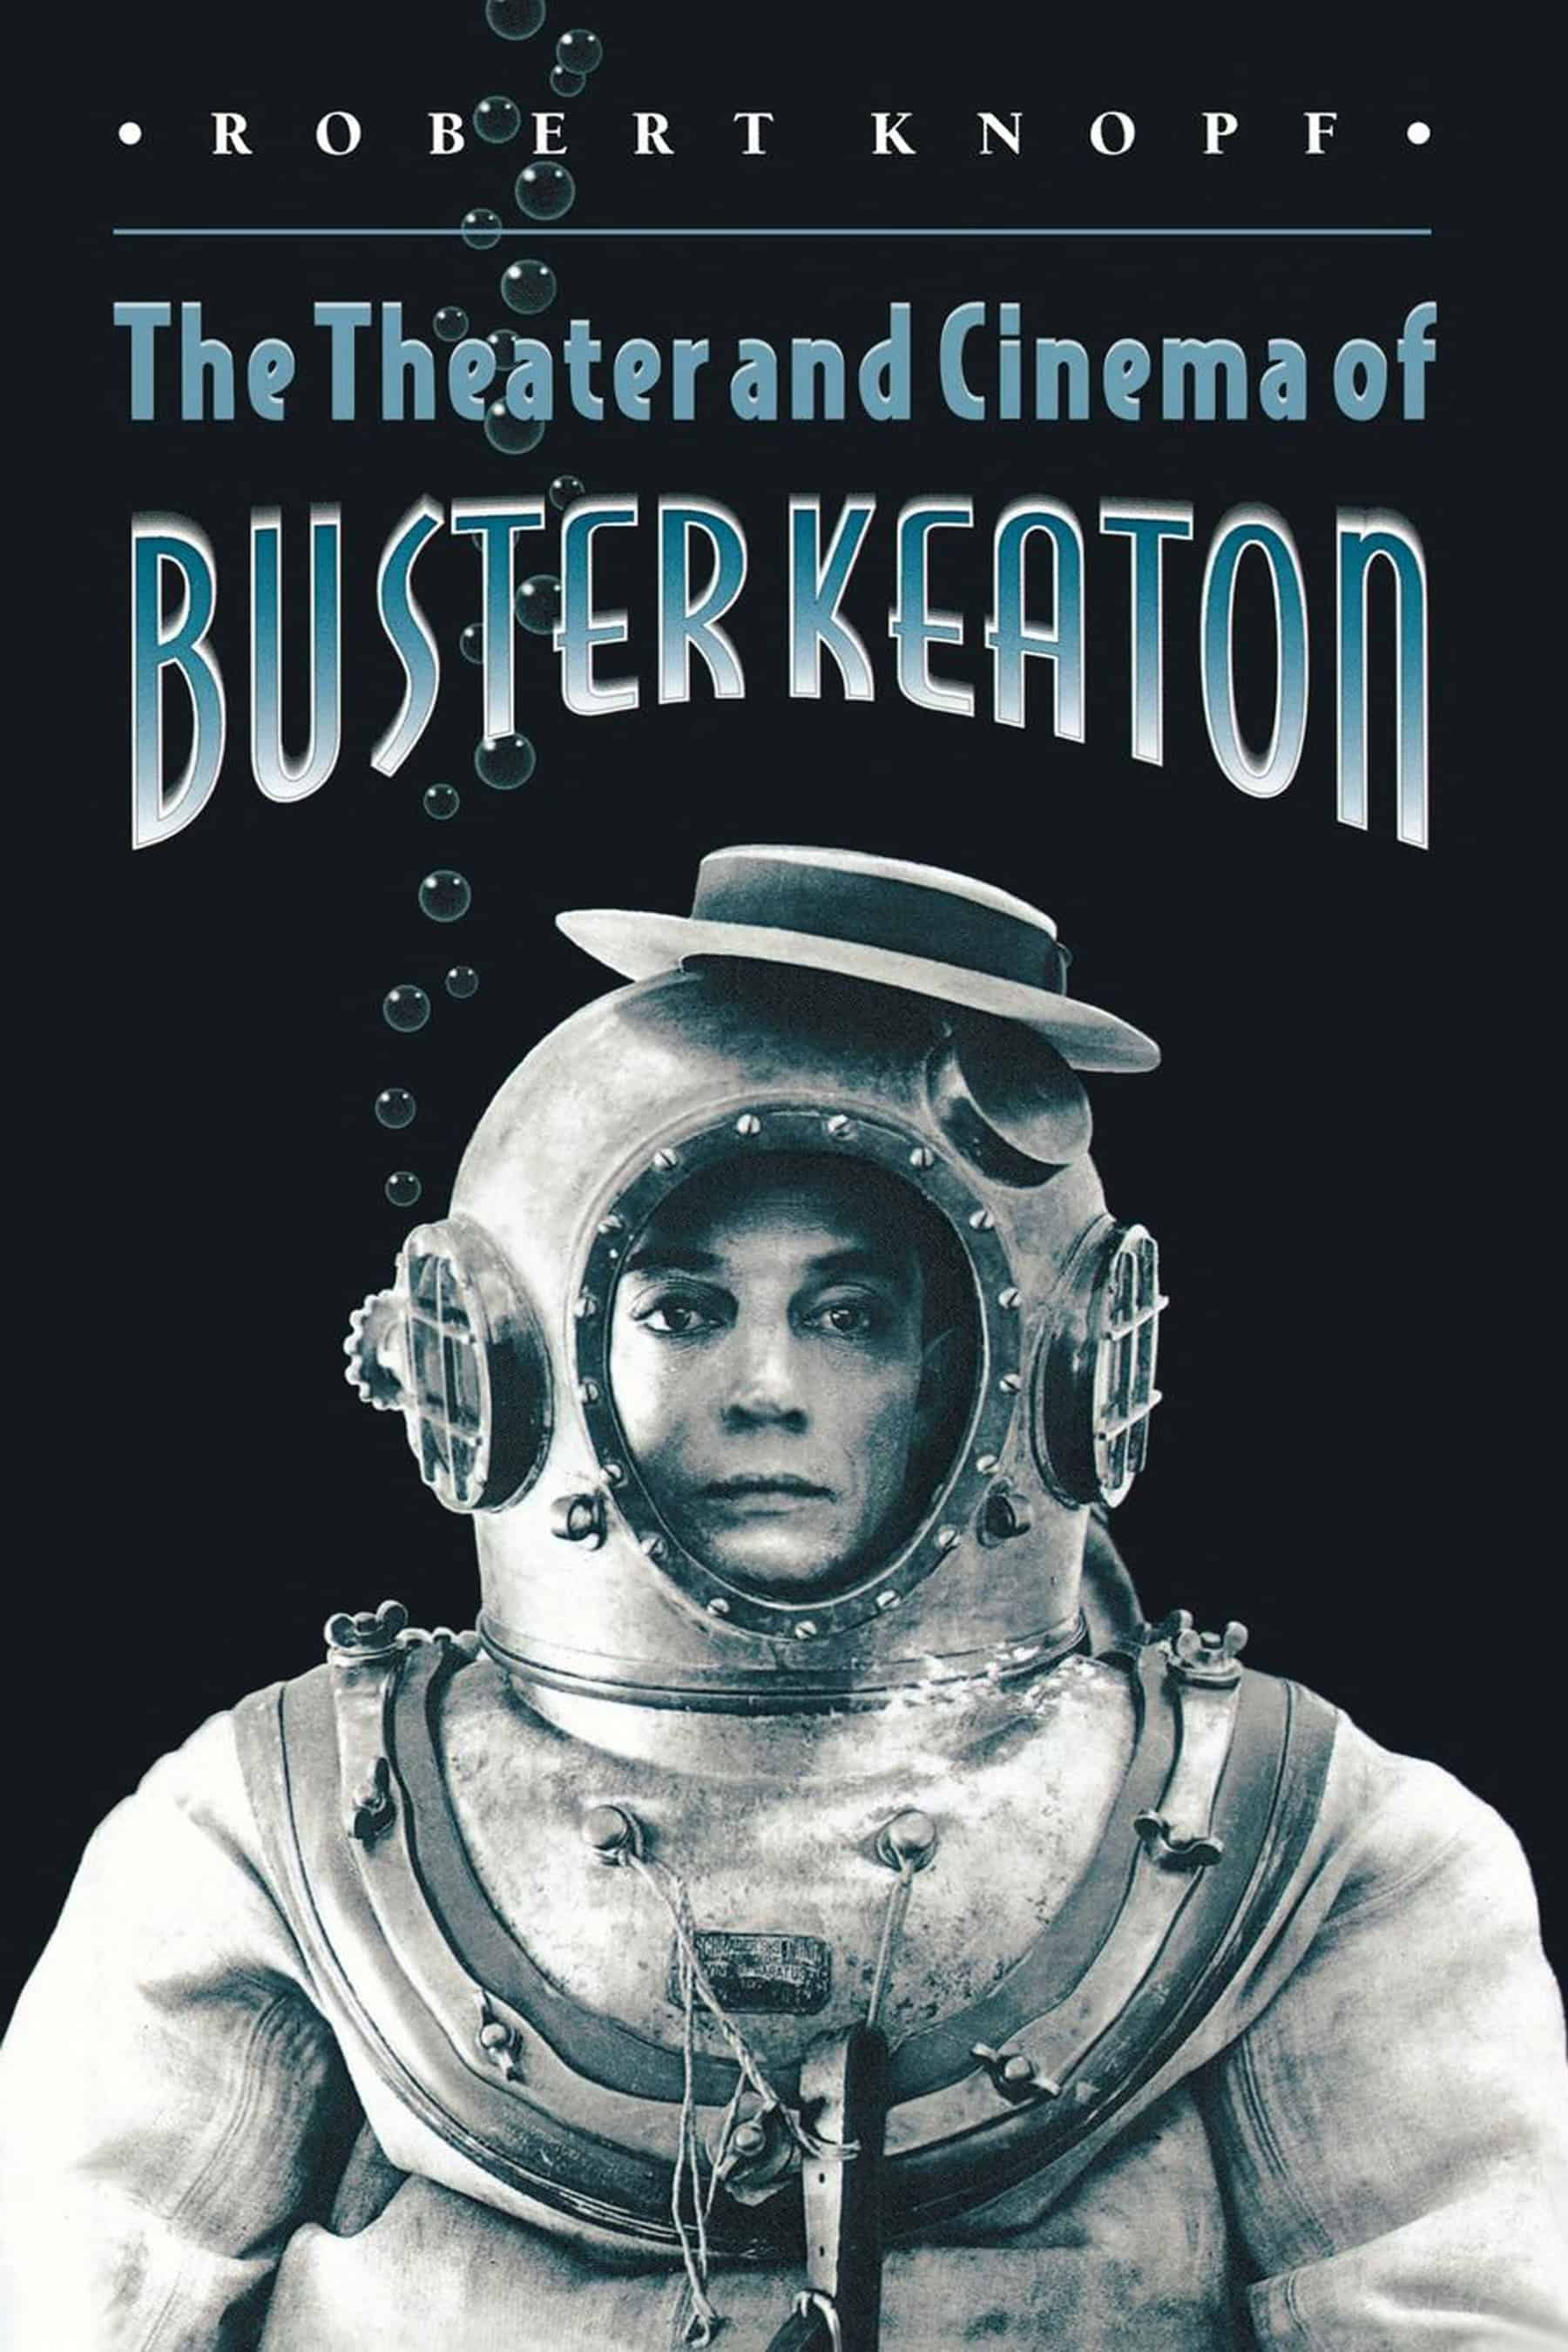 The Theater and Cinema of Buster Keaton - The Theater and Cinema of Buster Keaton